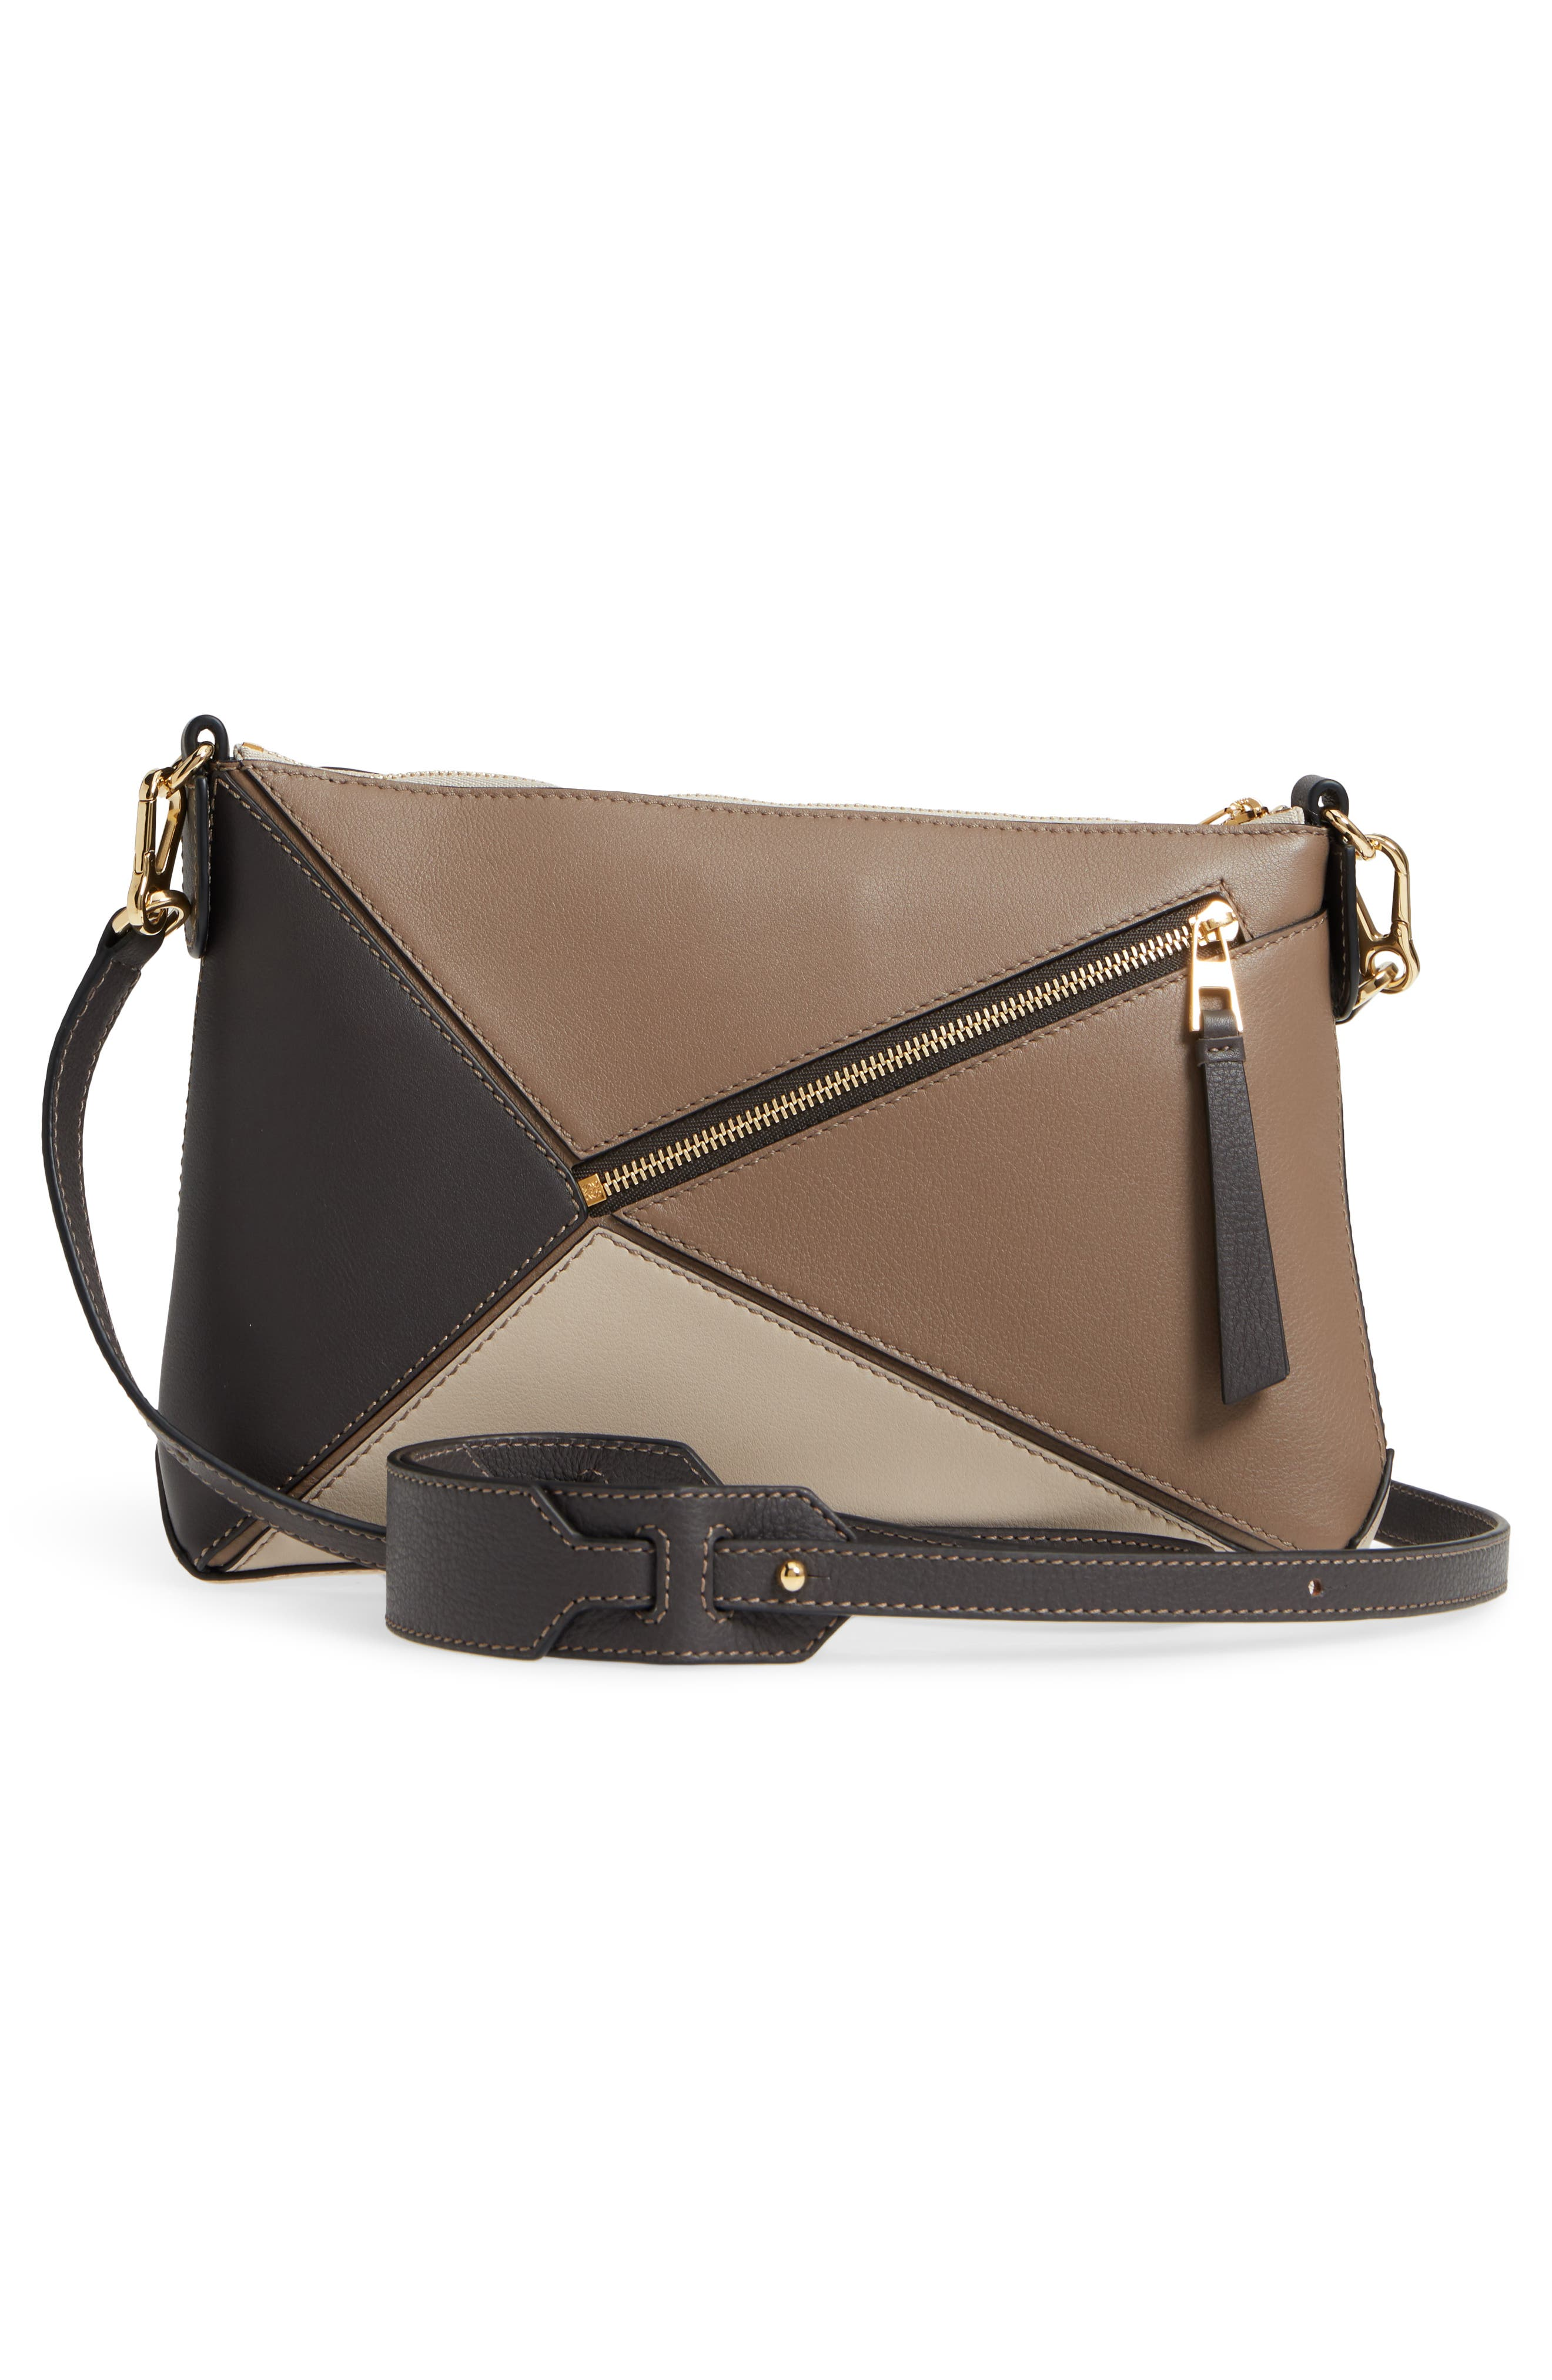 Alternate Image 3  - Loewe Mini Puzzle Calfskin Leather Crossbody Bag